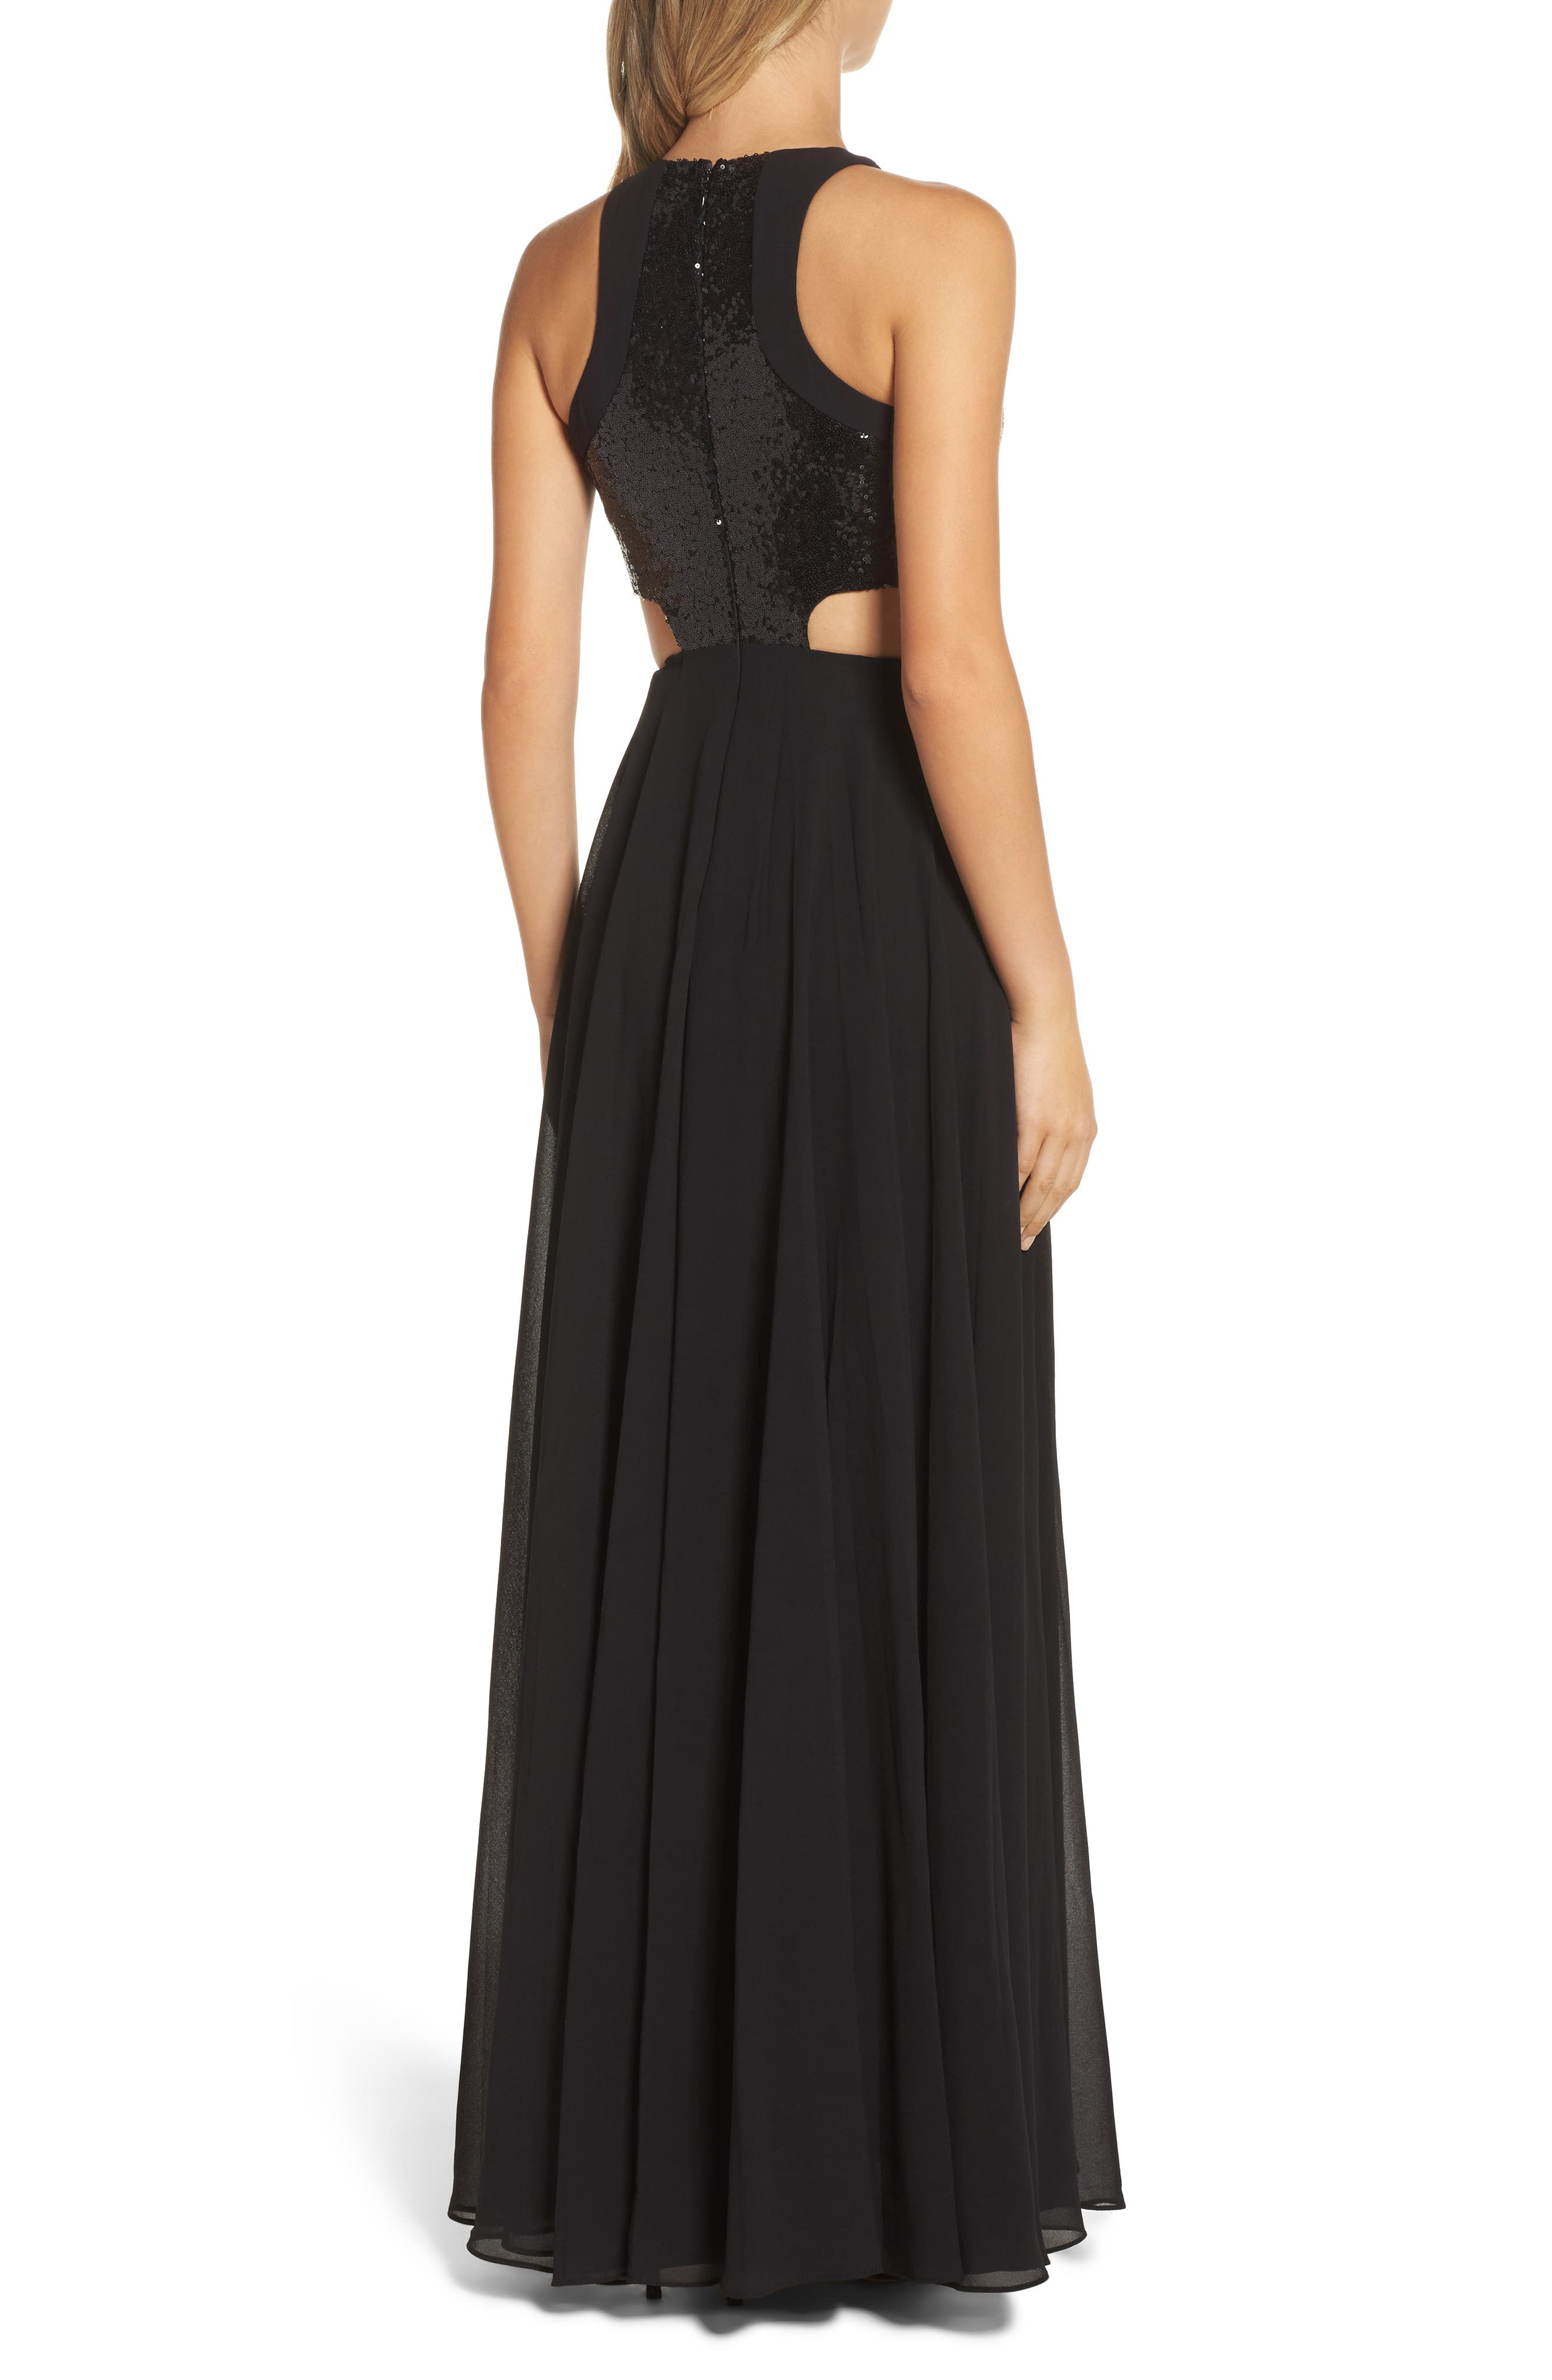 Nothing but Love Sequin Bodice Maxi Dress,                             Alternate thumbnail 2, color,                             Black